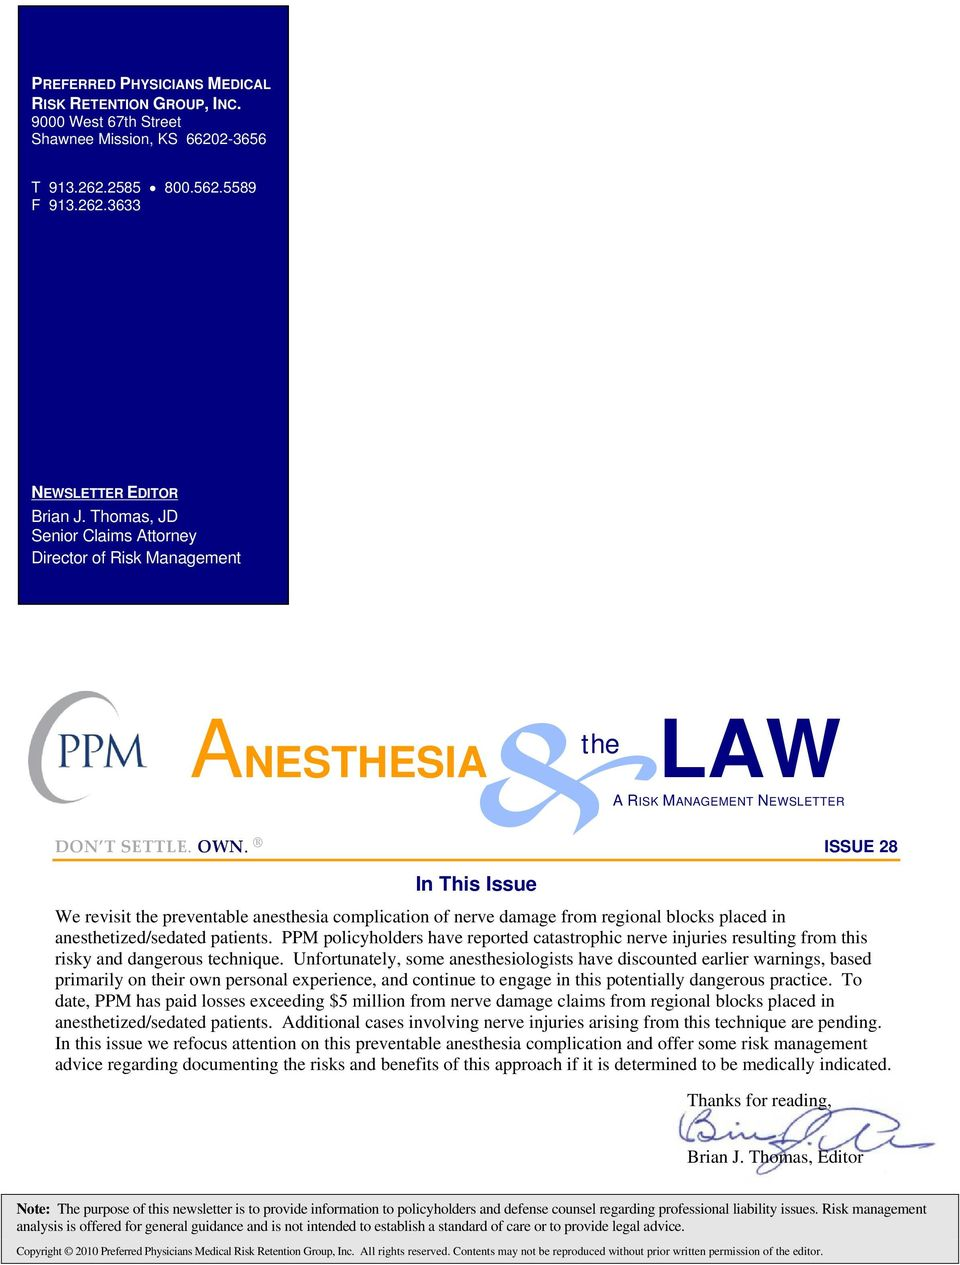 ISSUE 28 In This Issue We revisit the preventable anesthesia complication of nerve damage from regional blocks placed in anesthetized/sedated patients.